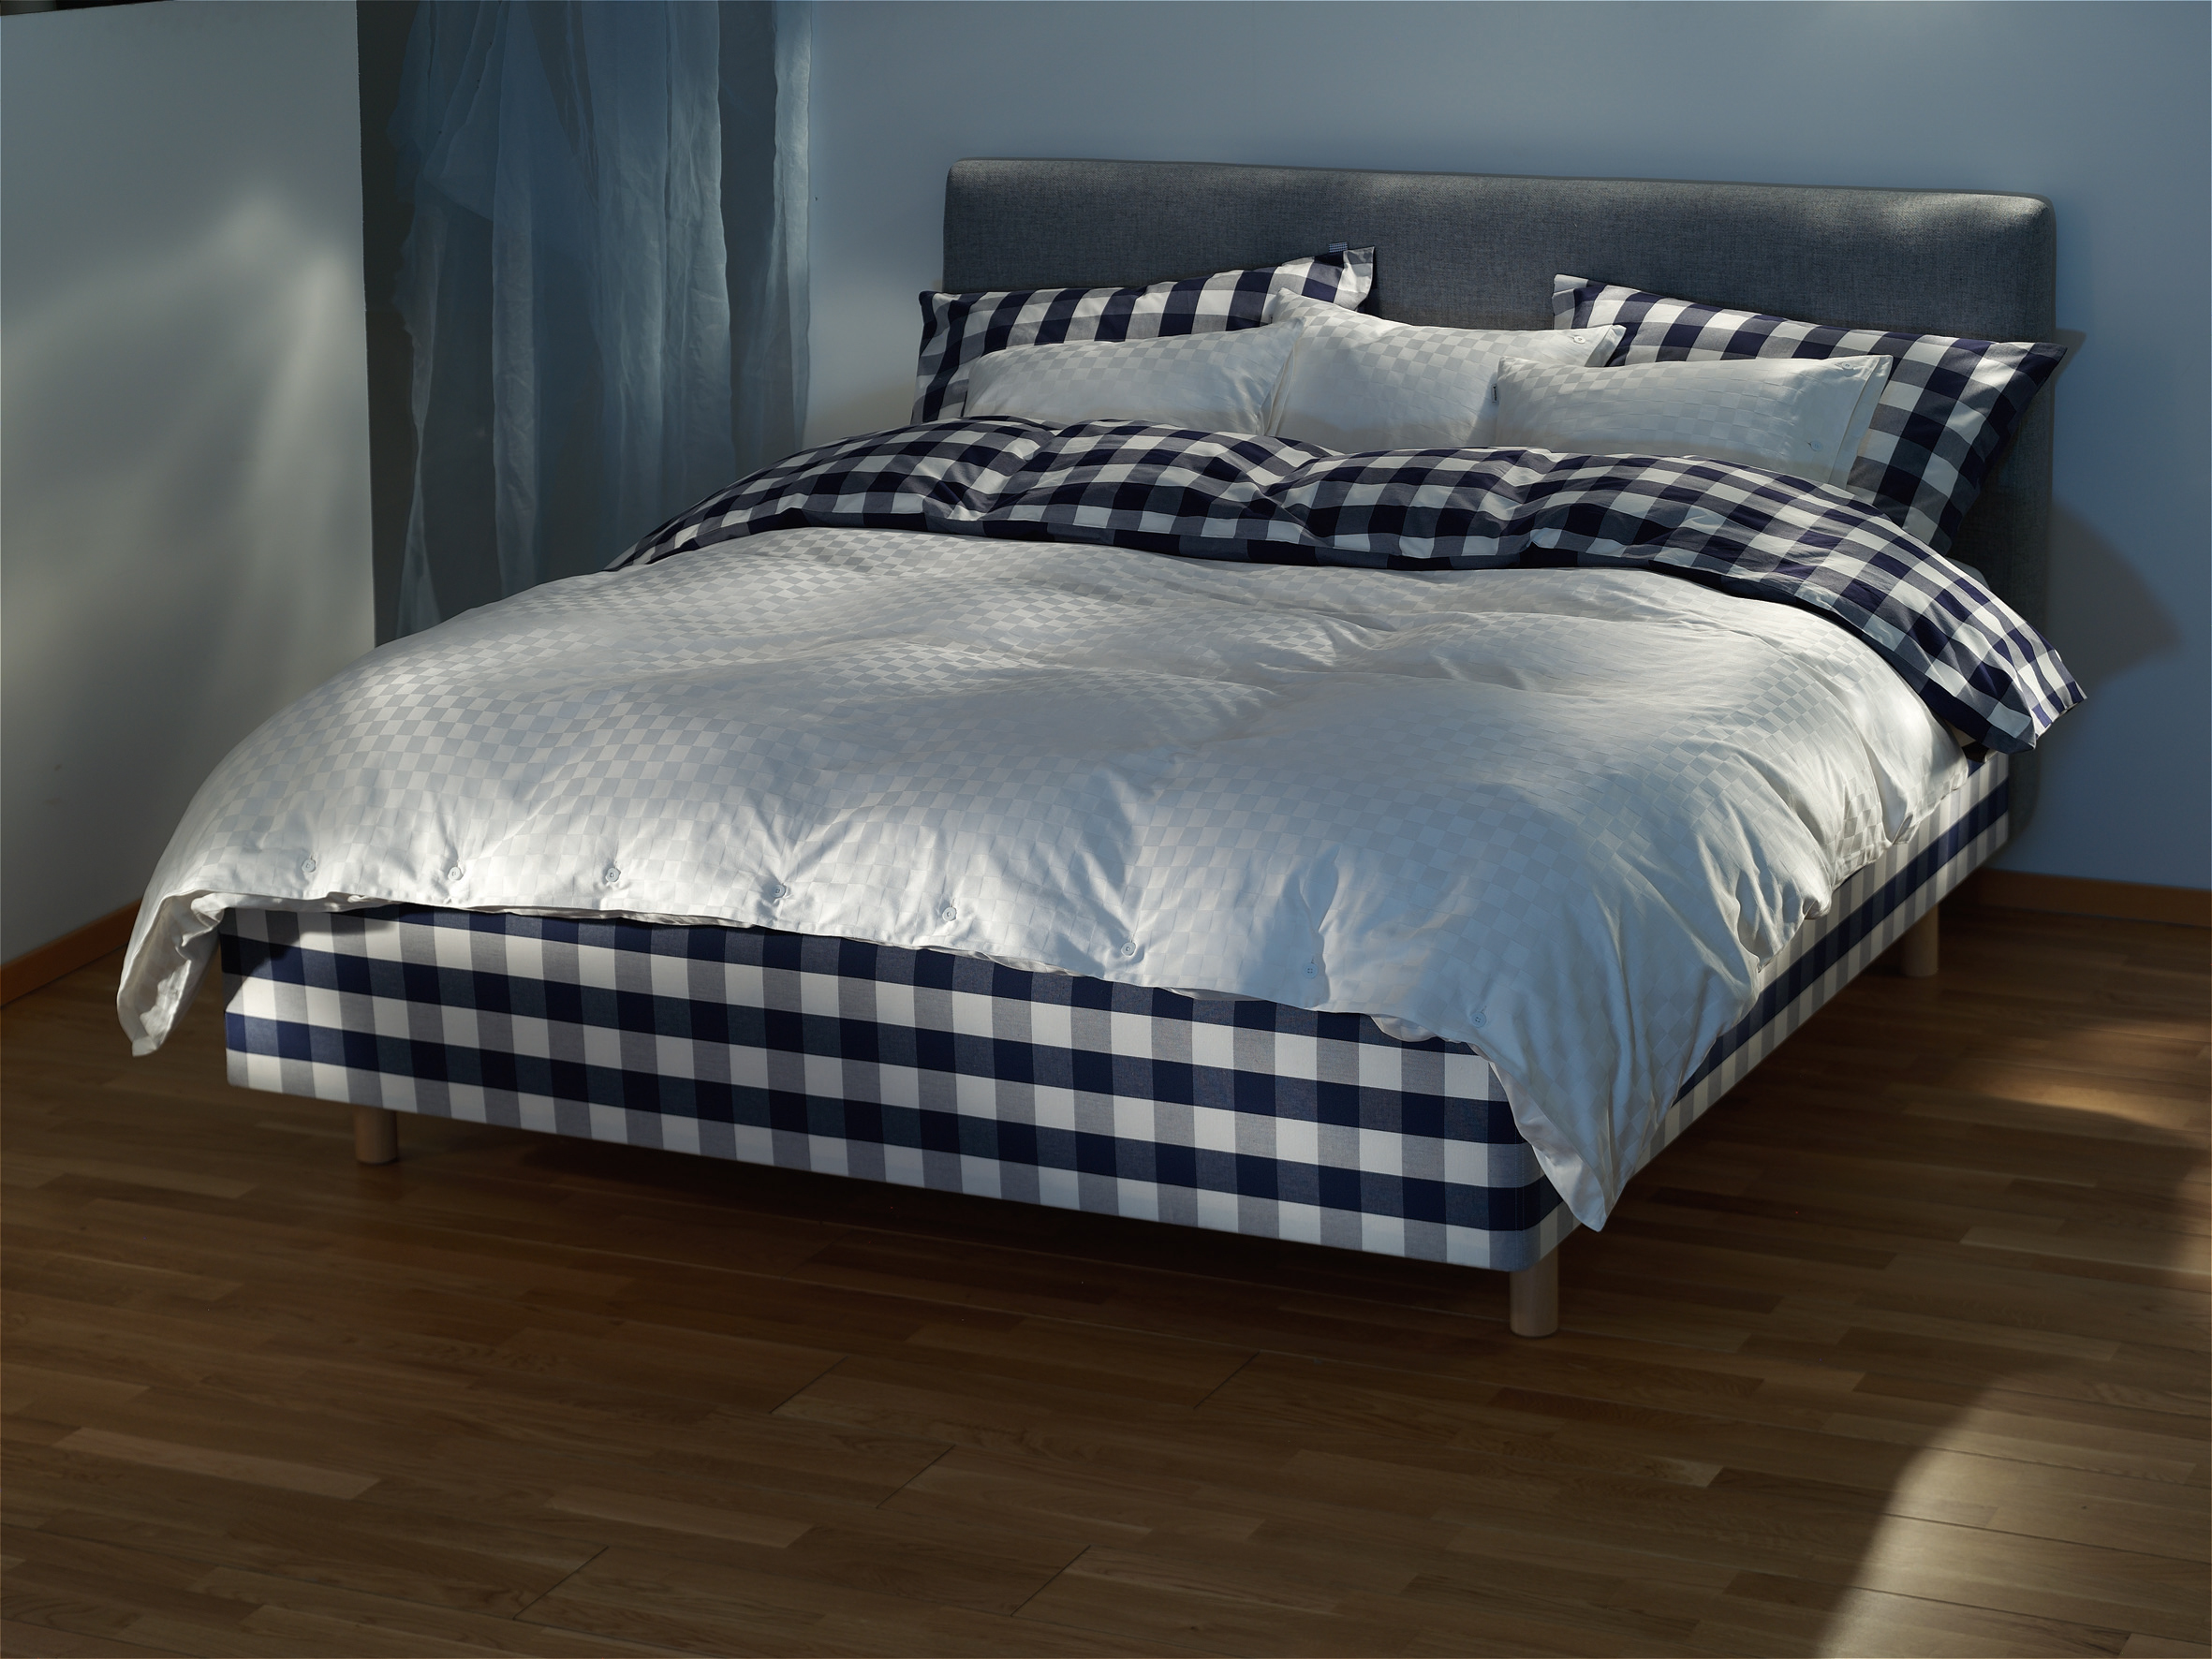 Excel Ii The Hastens Store Dallas